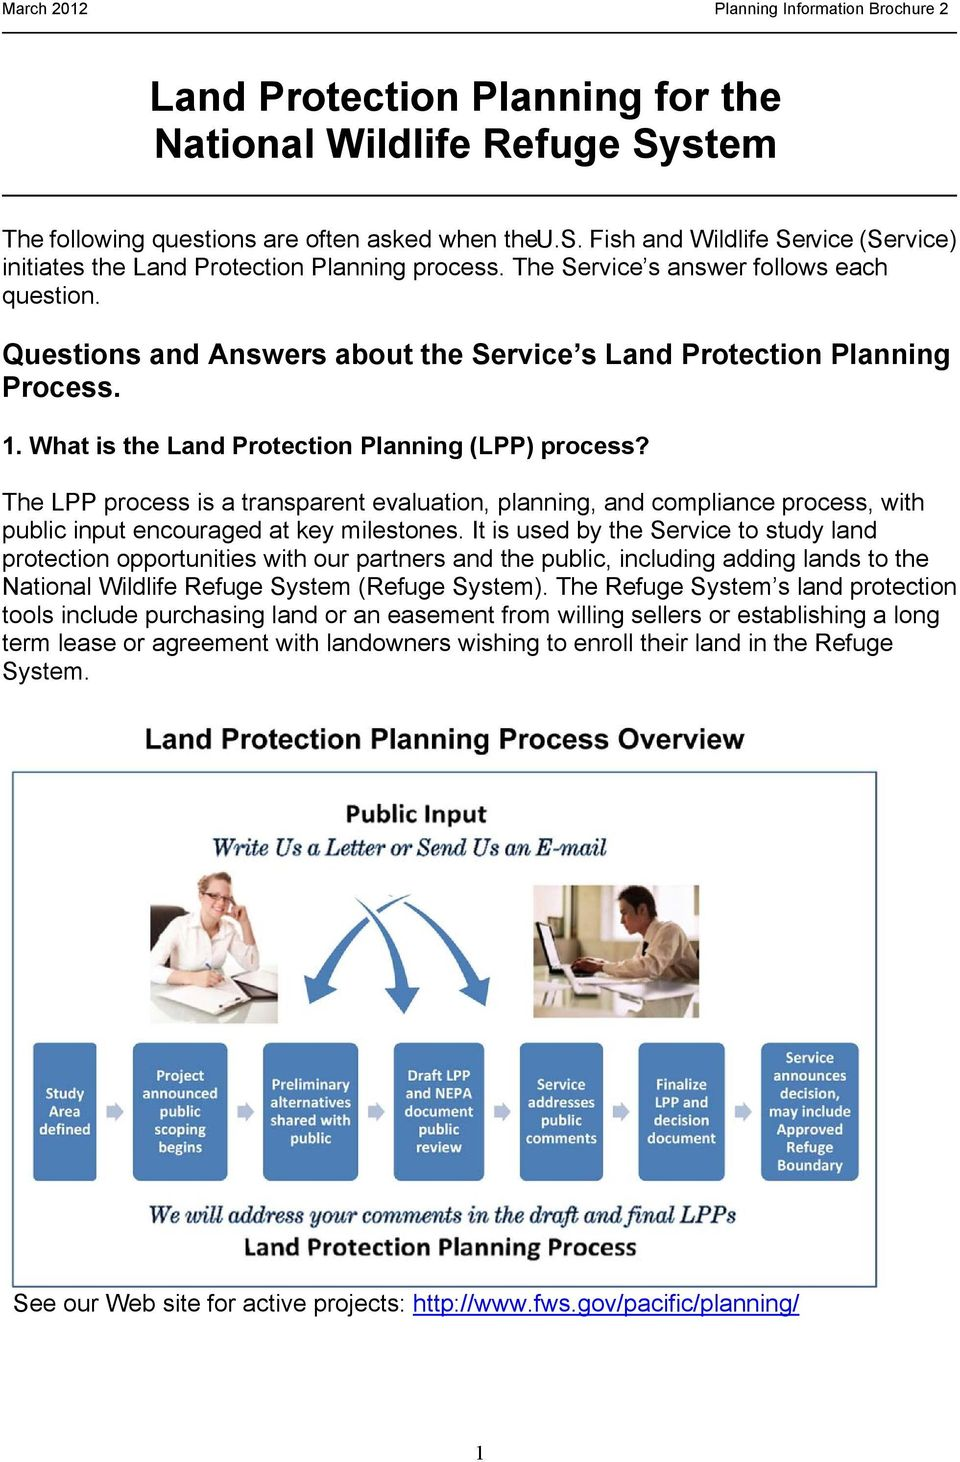 The LPP process is a transparent evaluation, planning, and compliance process, with public input encouraged at key milestones.